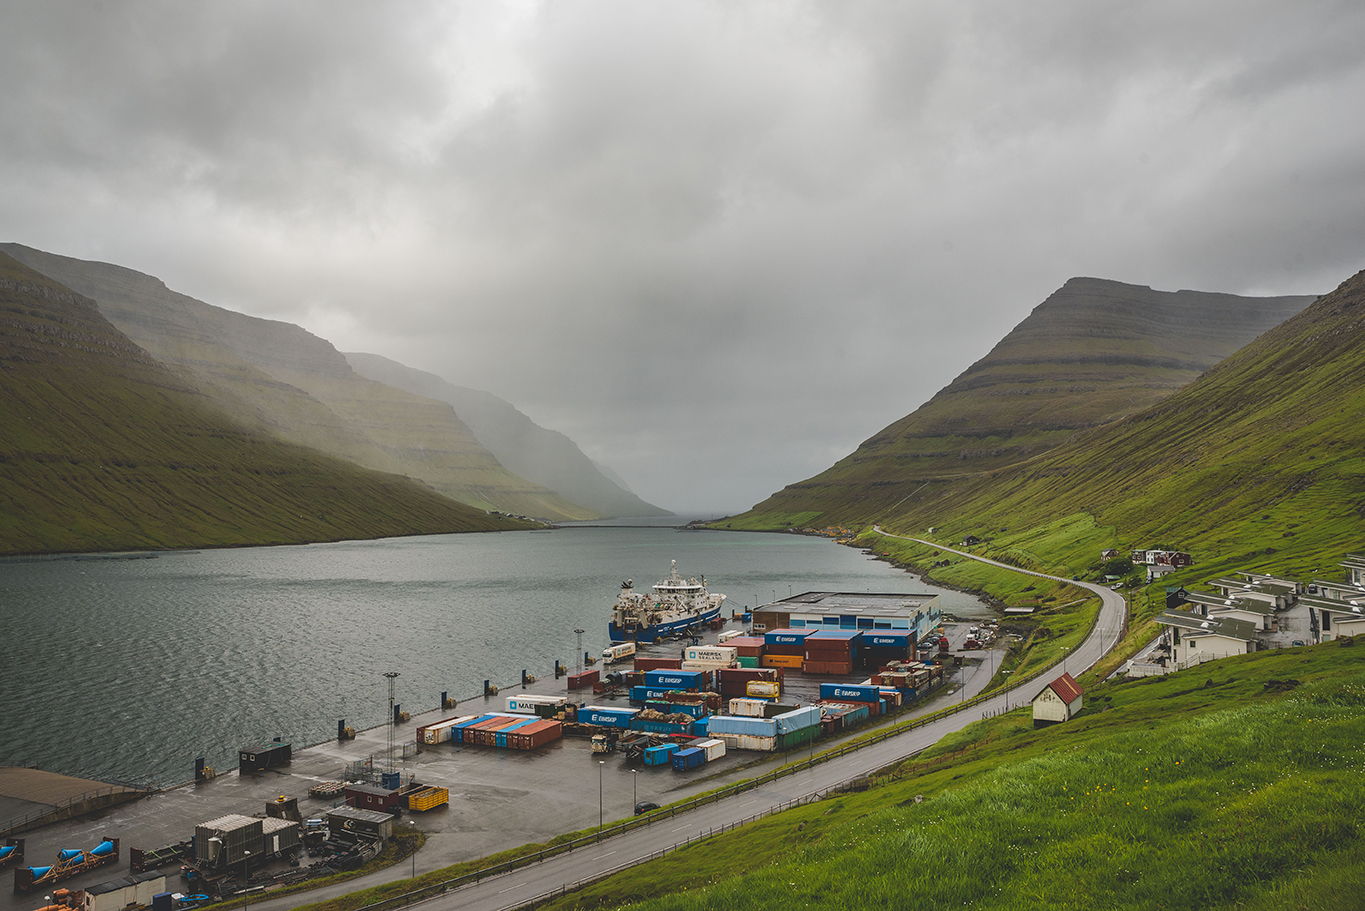 FaroeIslands_Day2_23-6-17_TAL-68.jpg